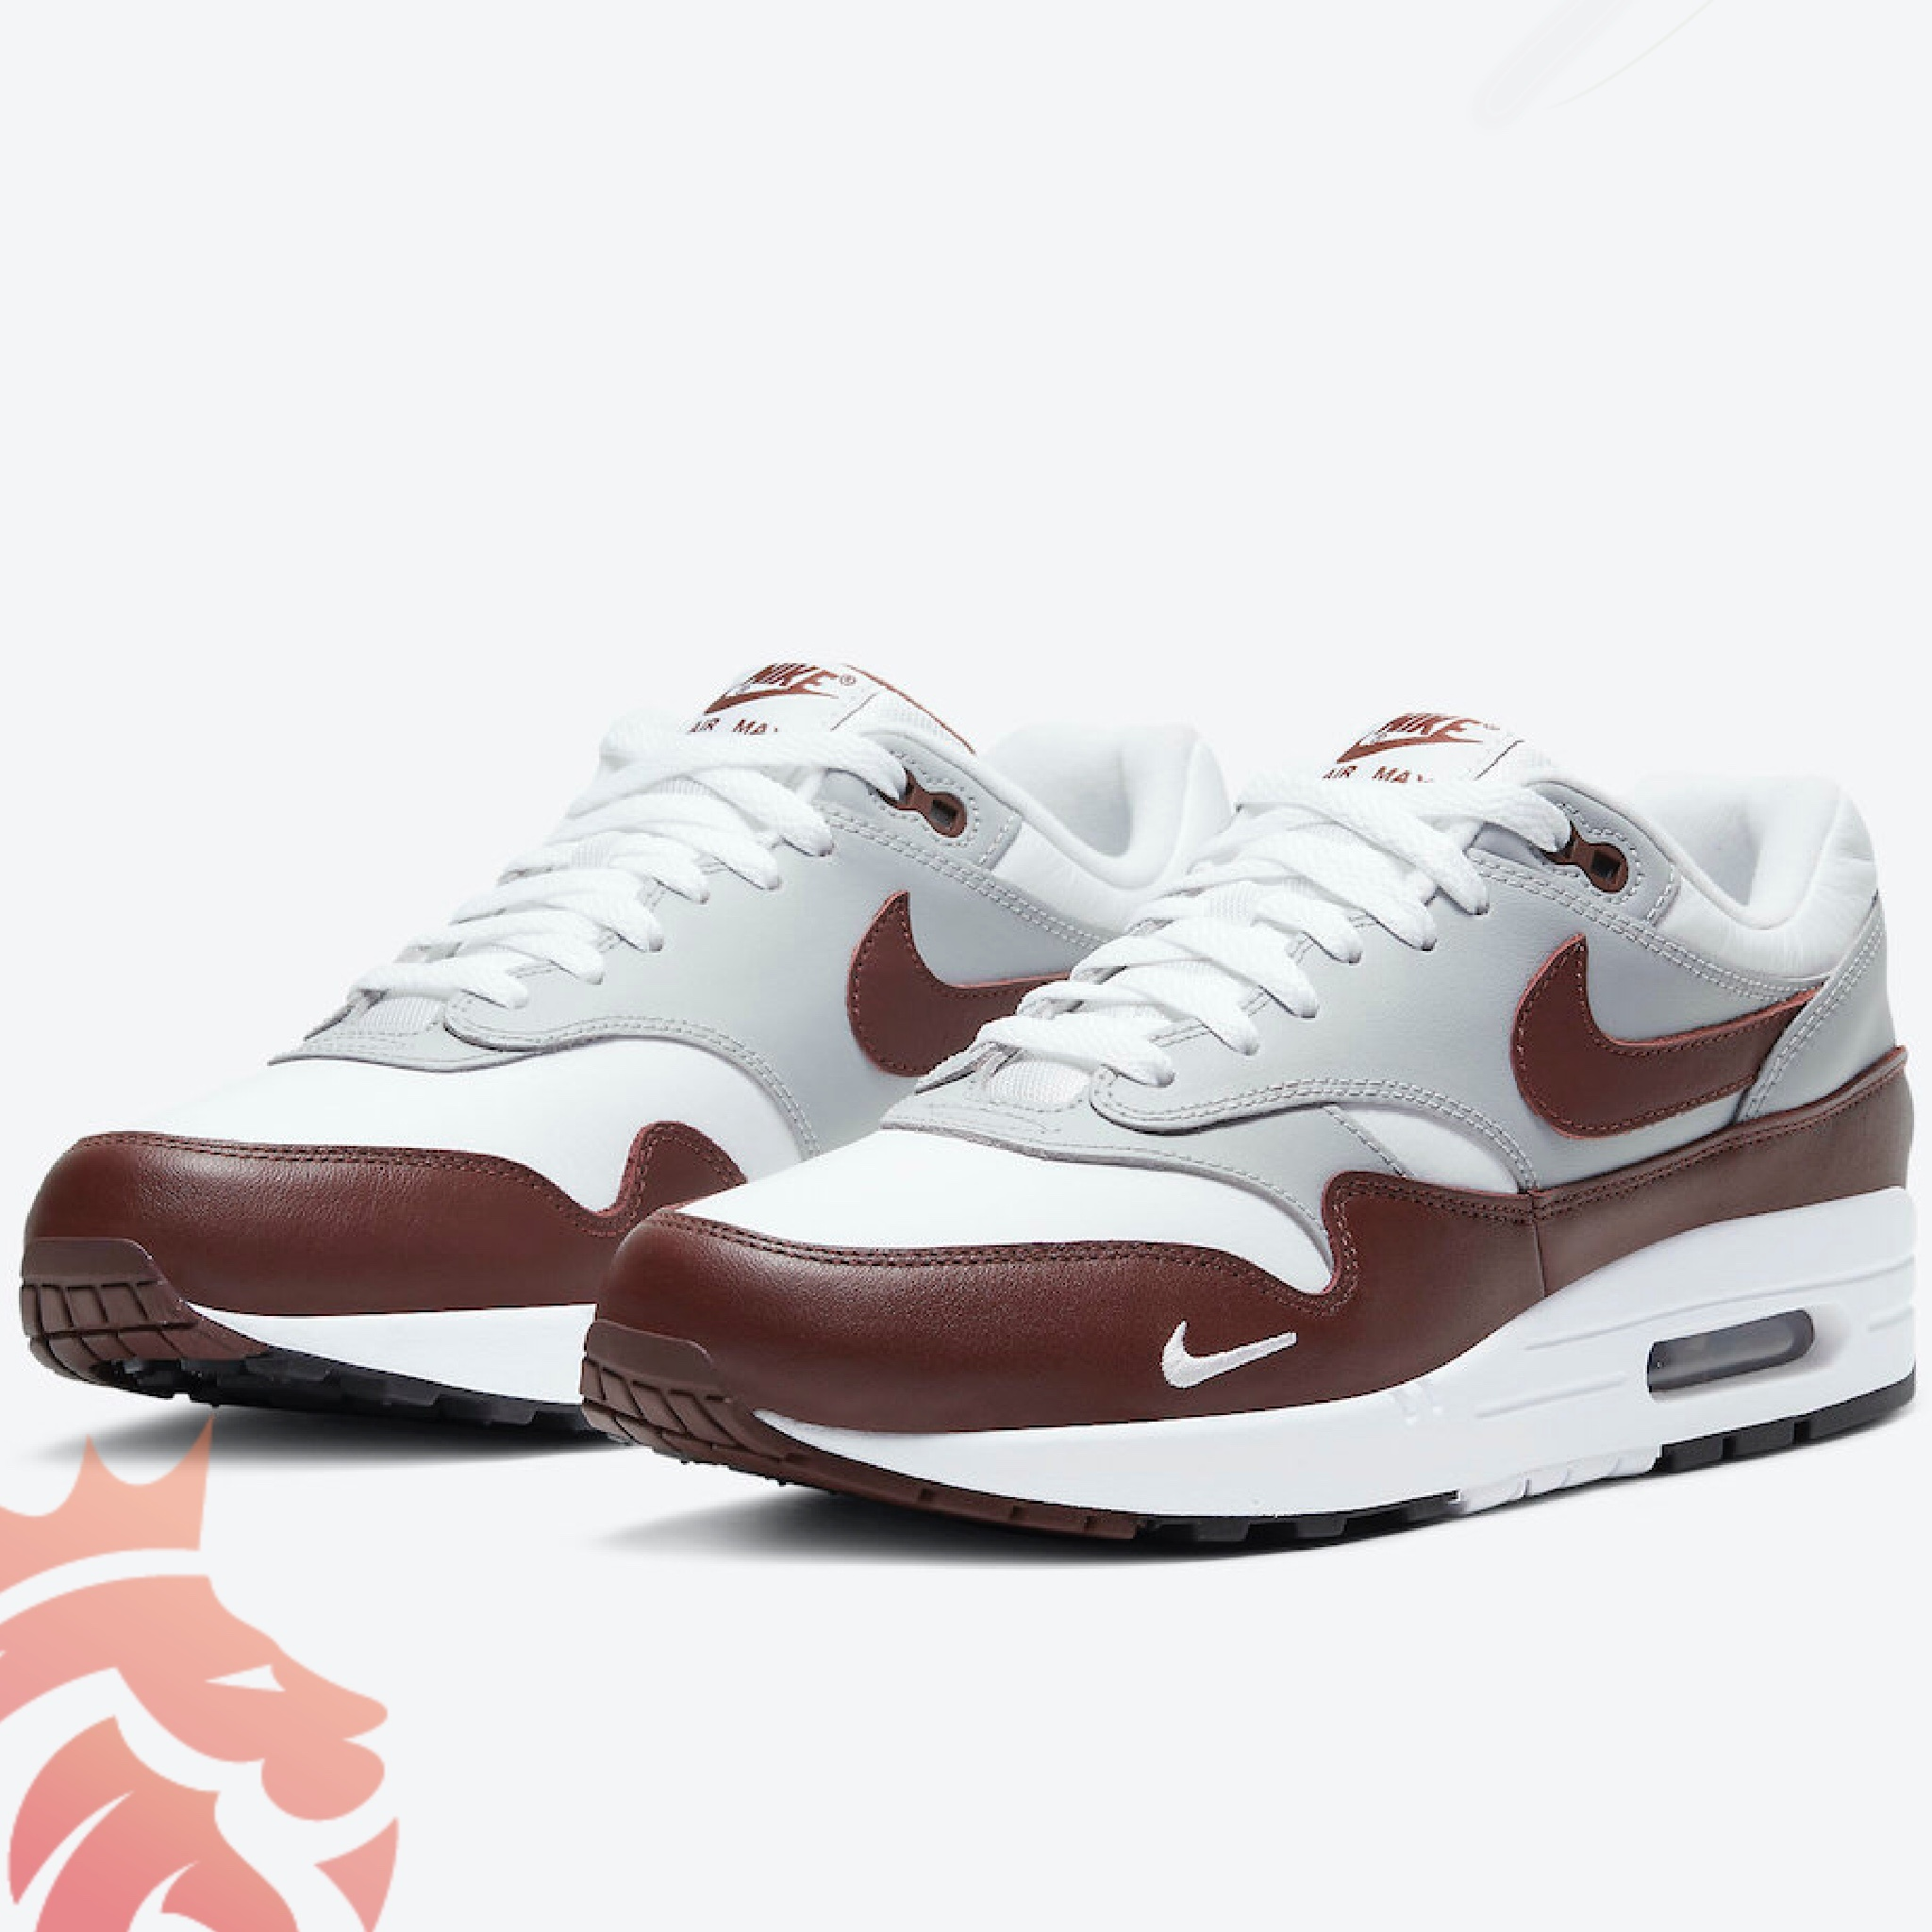 Nike Air Max 1 Brown Leather DB5074-101 Summit White/Brown/Soft Grey